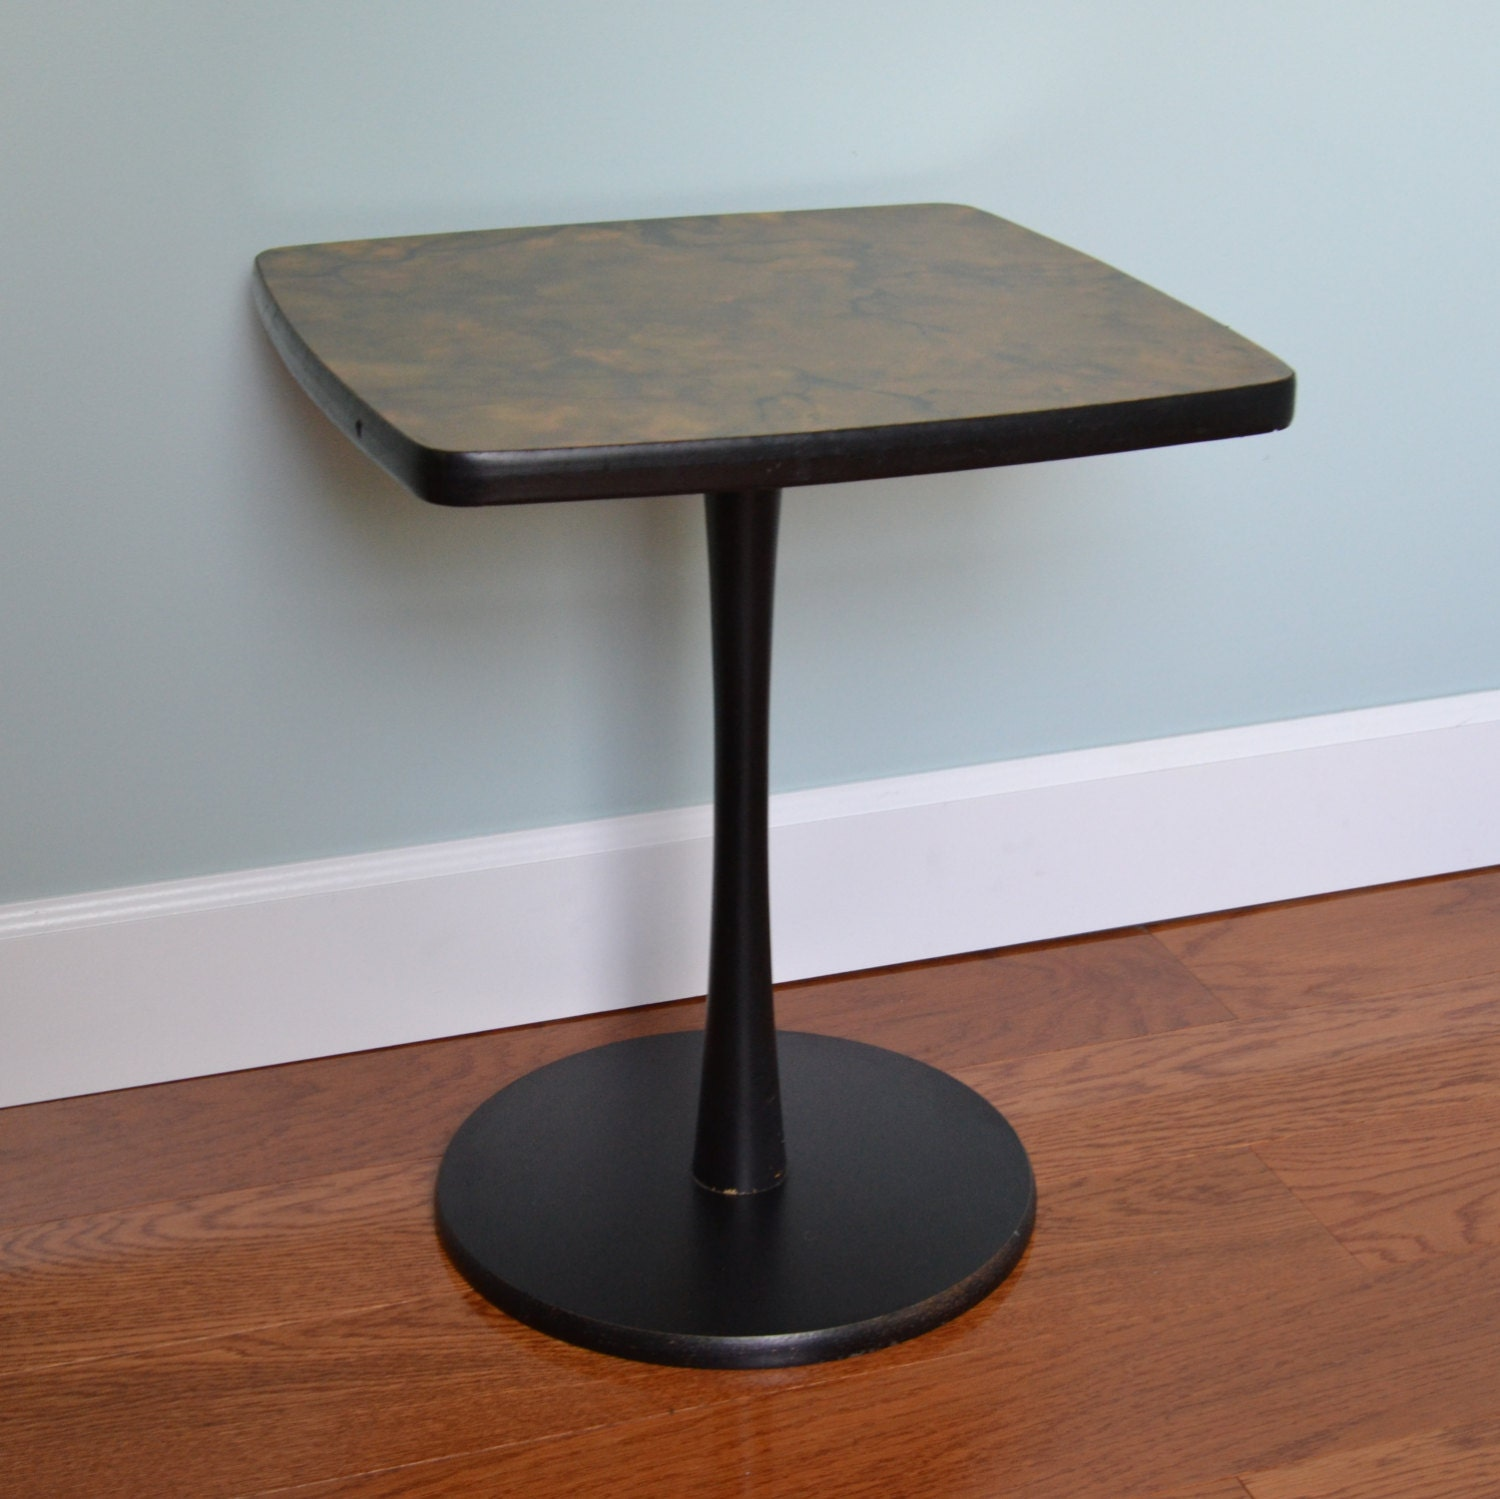 Faux Marble Table From Big Lots: Vintage Faux Marble Accent Table